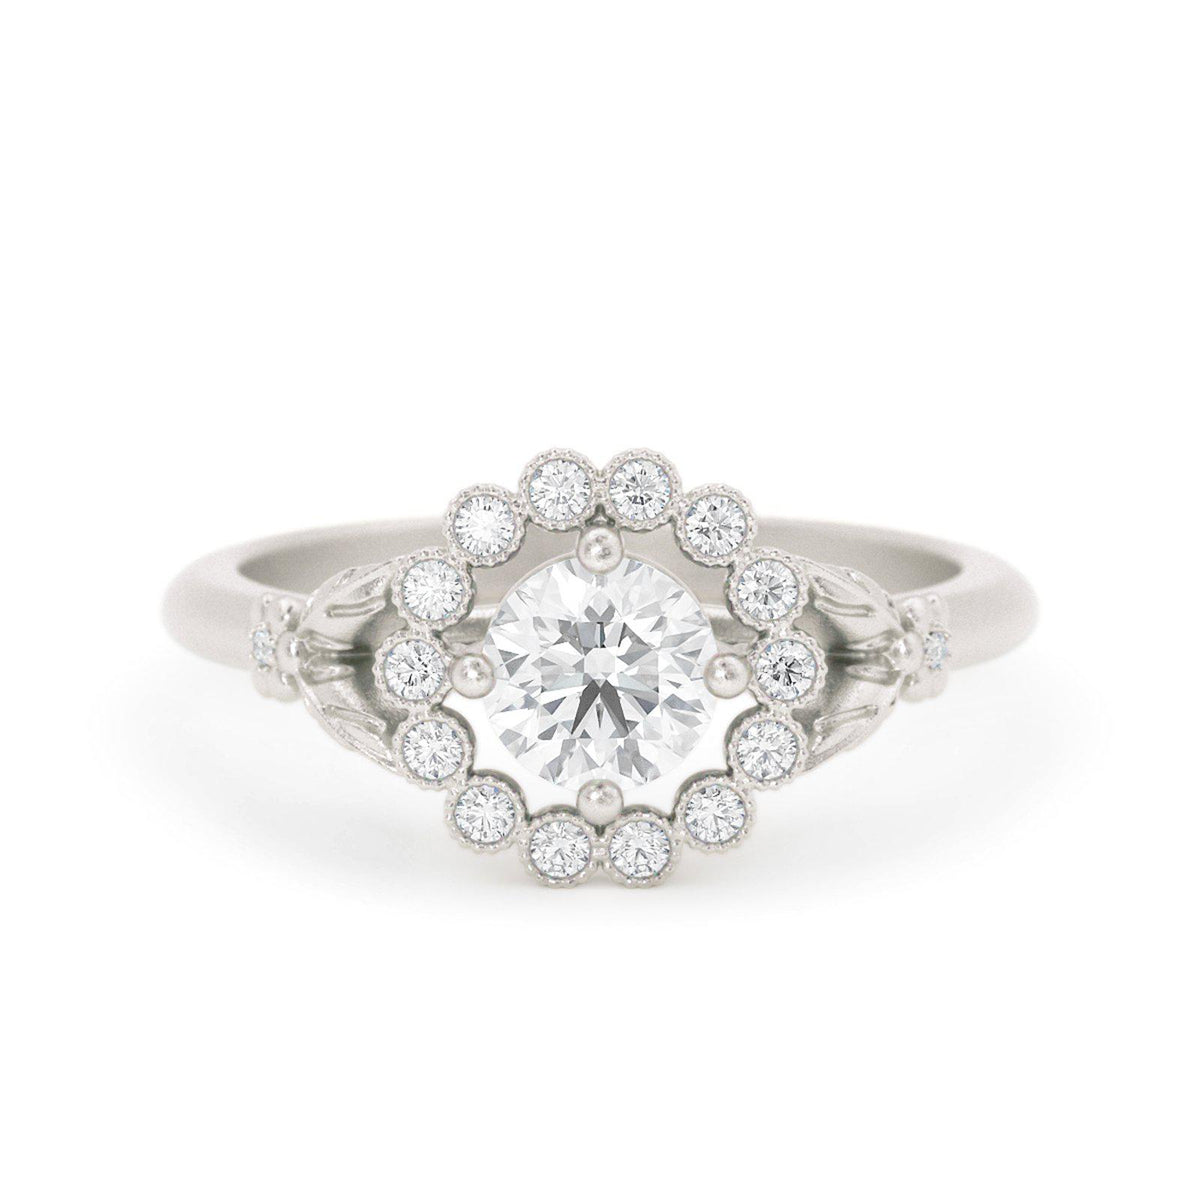 Gwendolyn Diamond Halo Ring White Gold